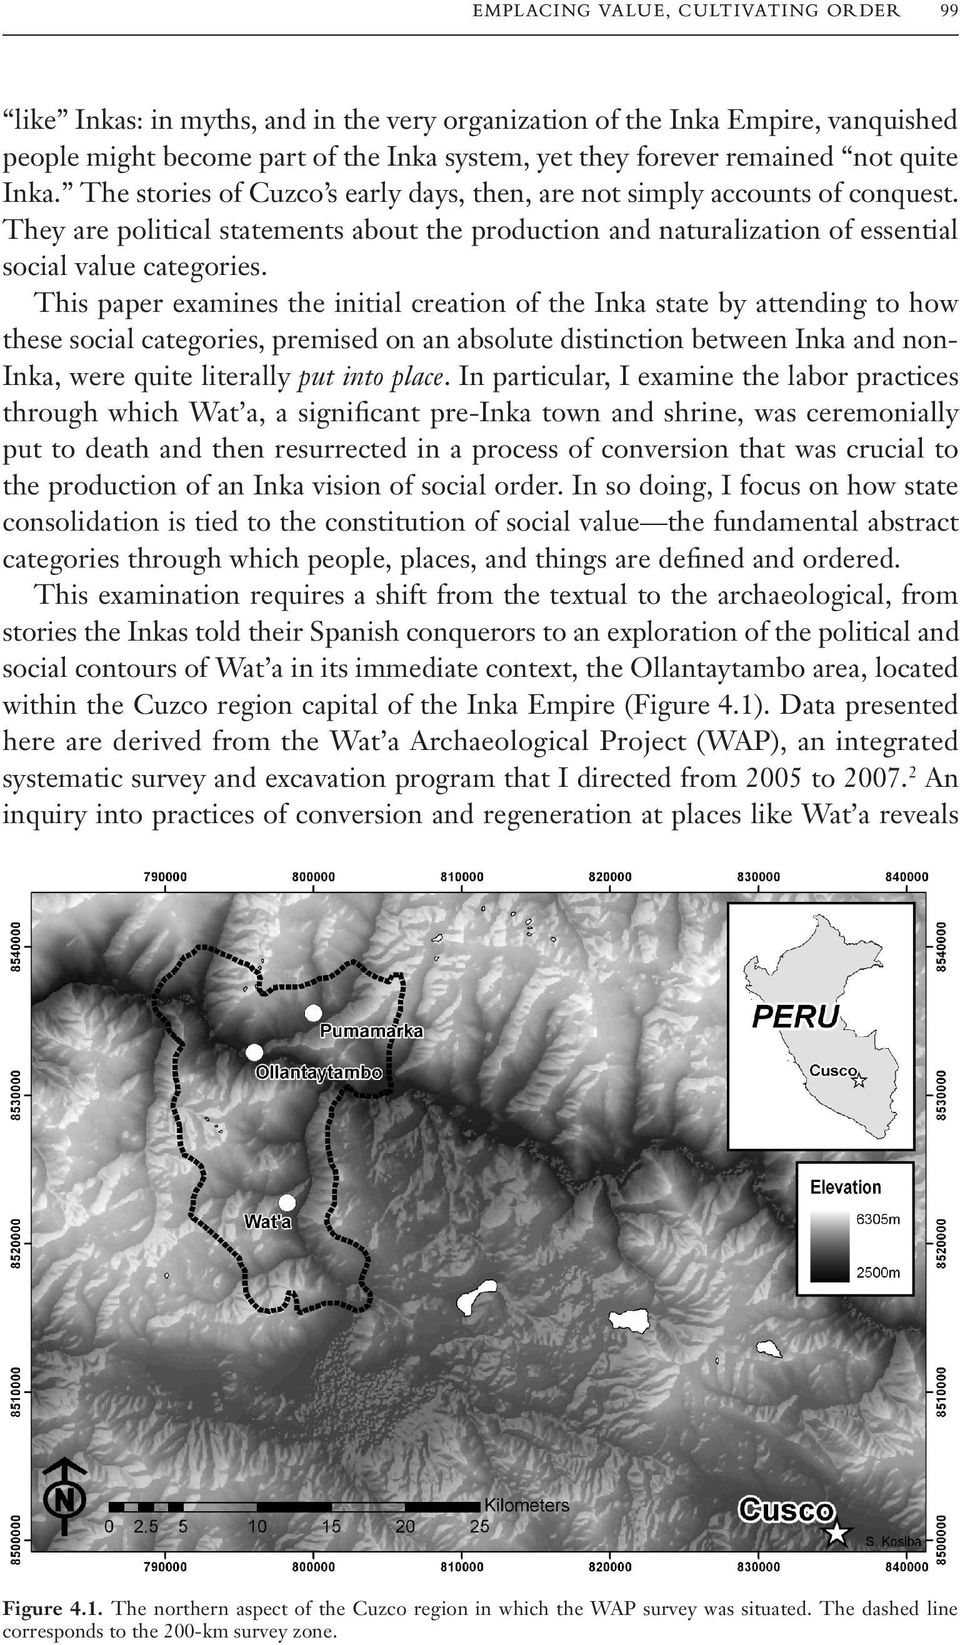 This paper examines the initial creation of the Inka state by attending to how these social categories, premised on an absolute distinction between Inka and non- Inka, were quite literally put into